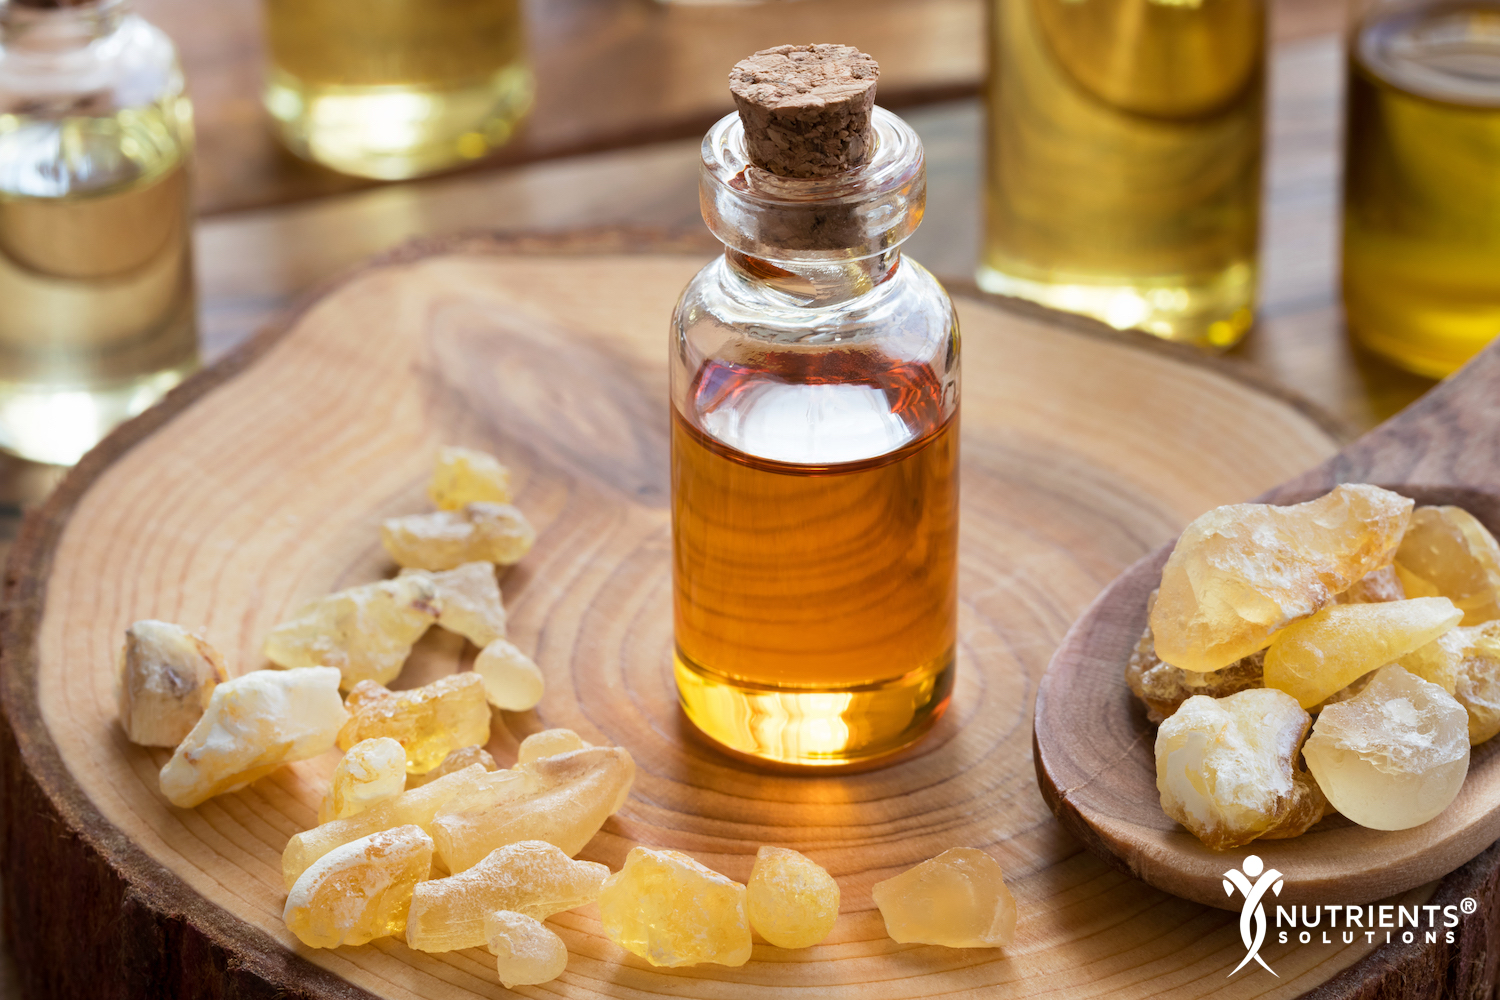 Boswellia for Relief from Pain, Inflammation, and Other Conditions